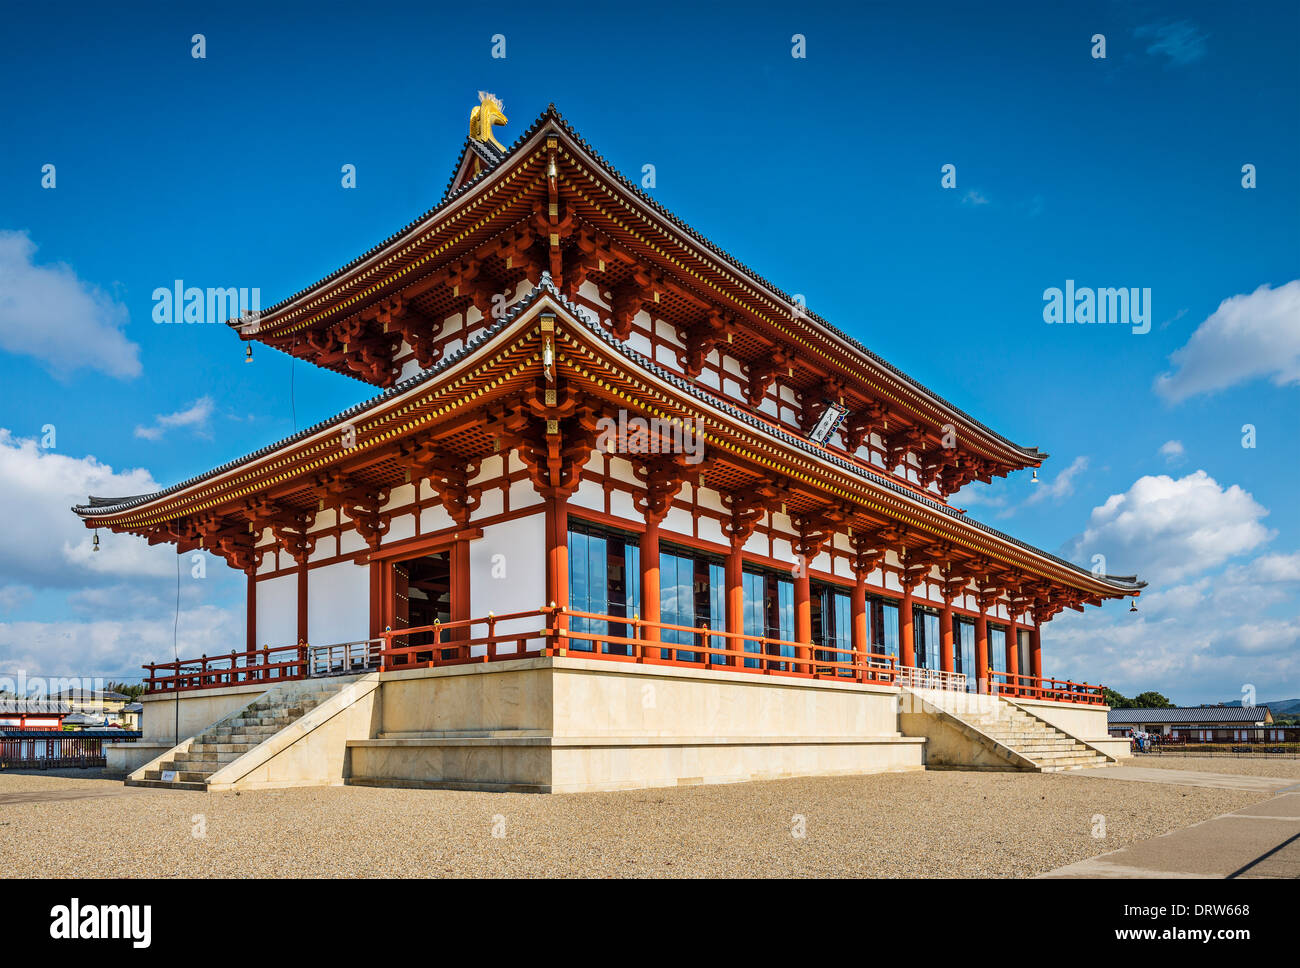 Nara, Japan at Heijo Palace. The site served as the Imperial Palace of Japan from 710-784 AD. - Stock Image